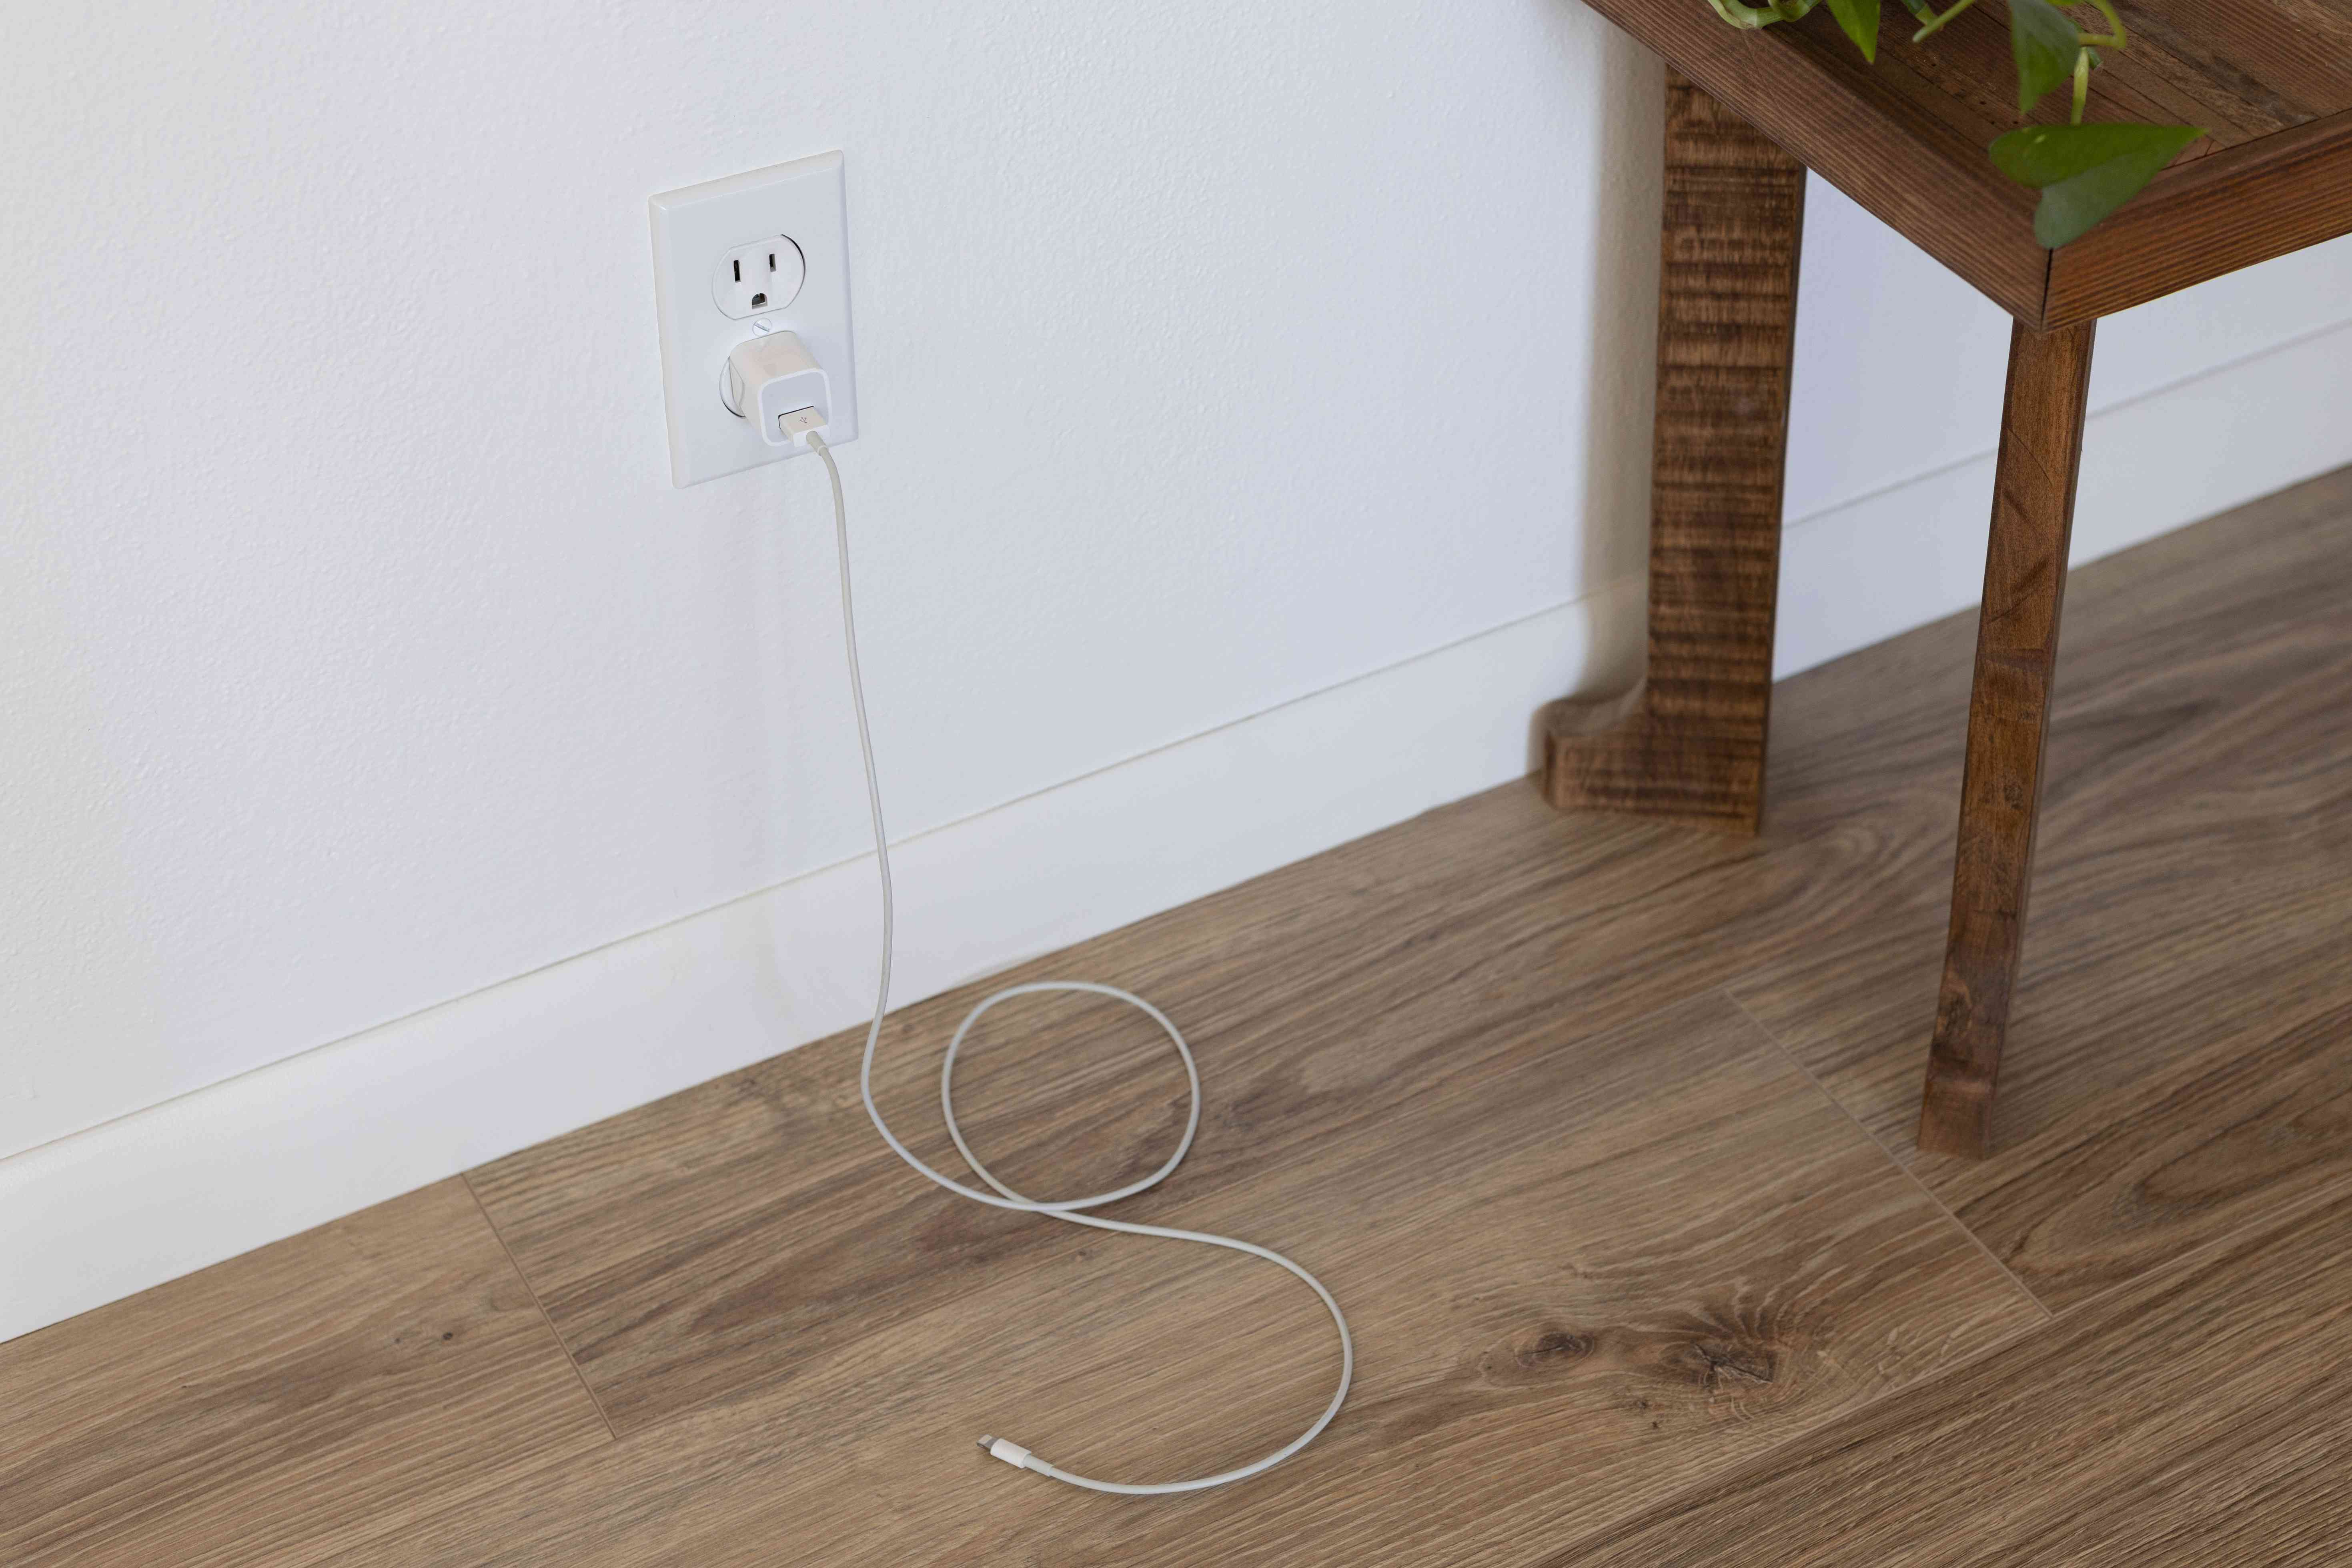 Phone charger plugged into wall creating phantom charge